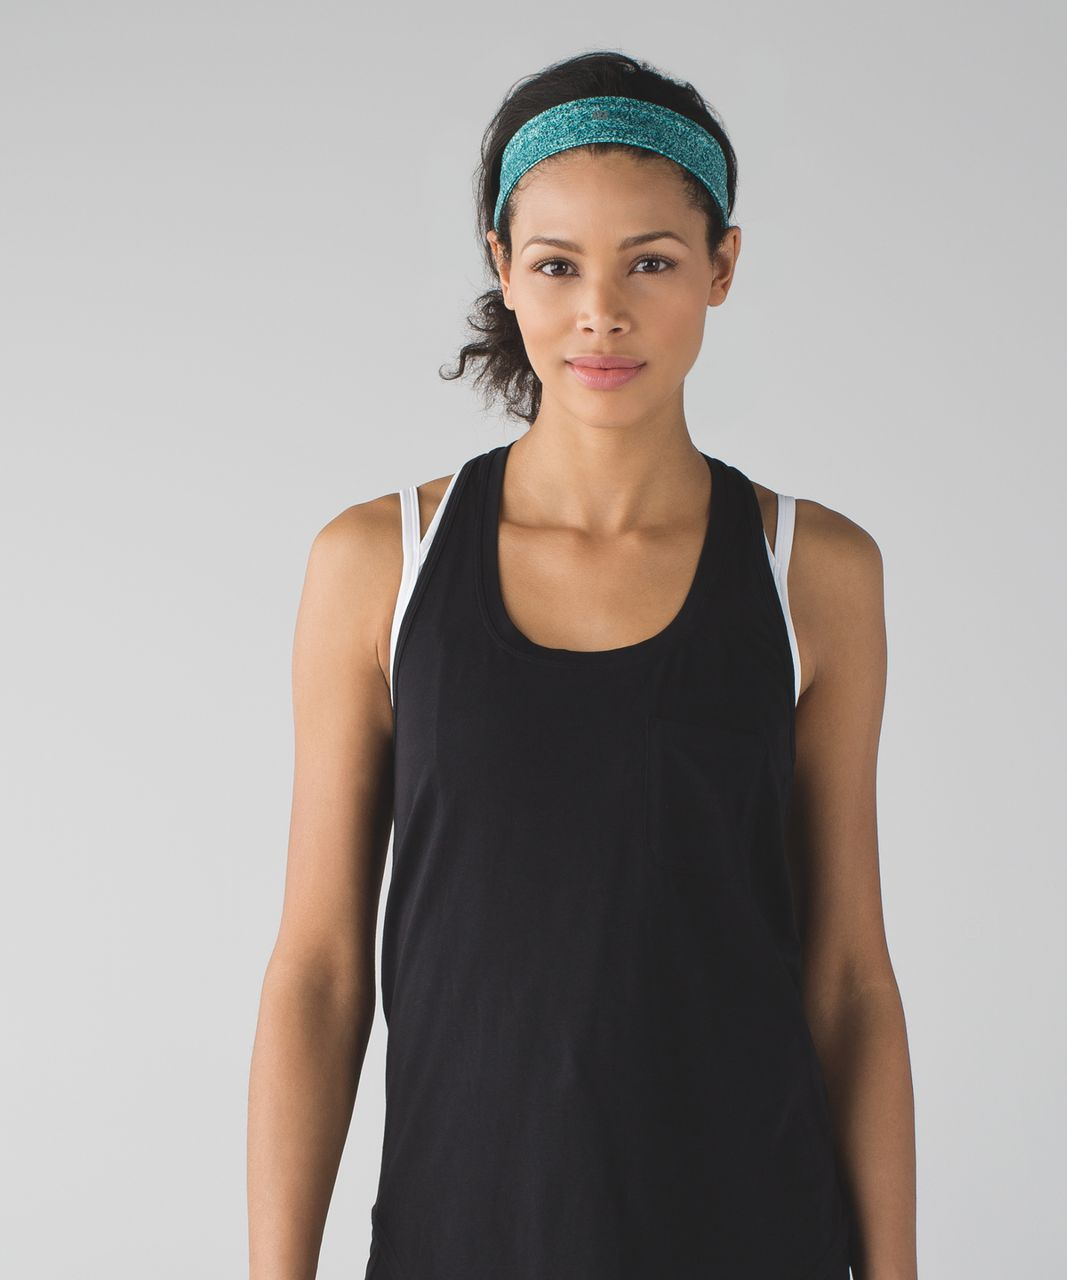 Lululemon Fly Away Tamer Headband 2.0 - Rio Mist Sea Mist Deep Green